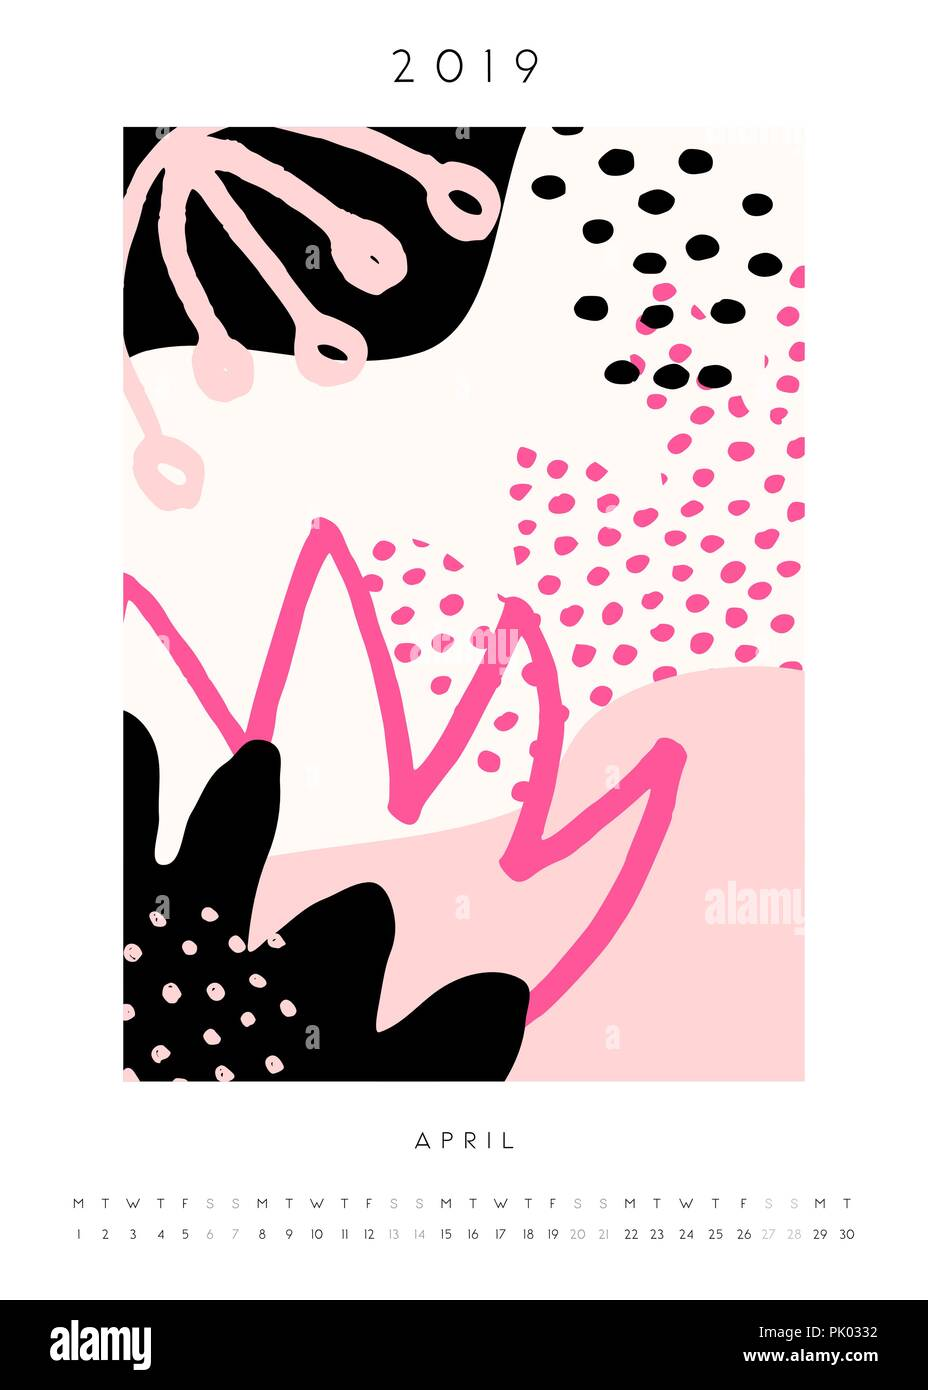 Printable A4 Size April 2019 Calendar Template Collage Style Design